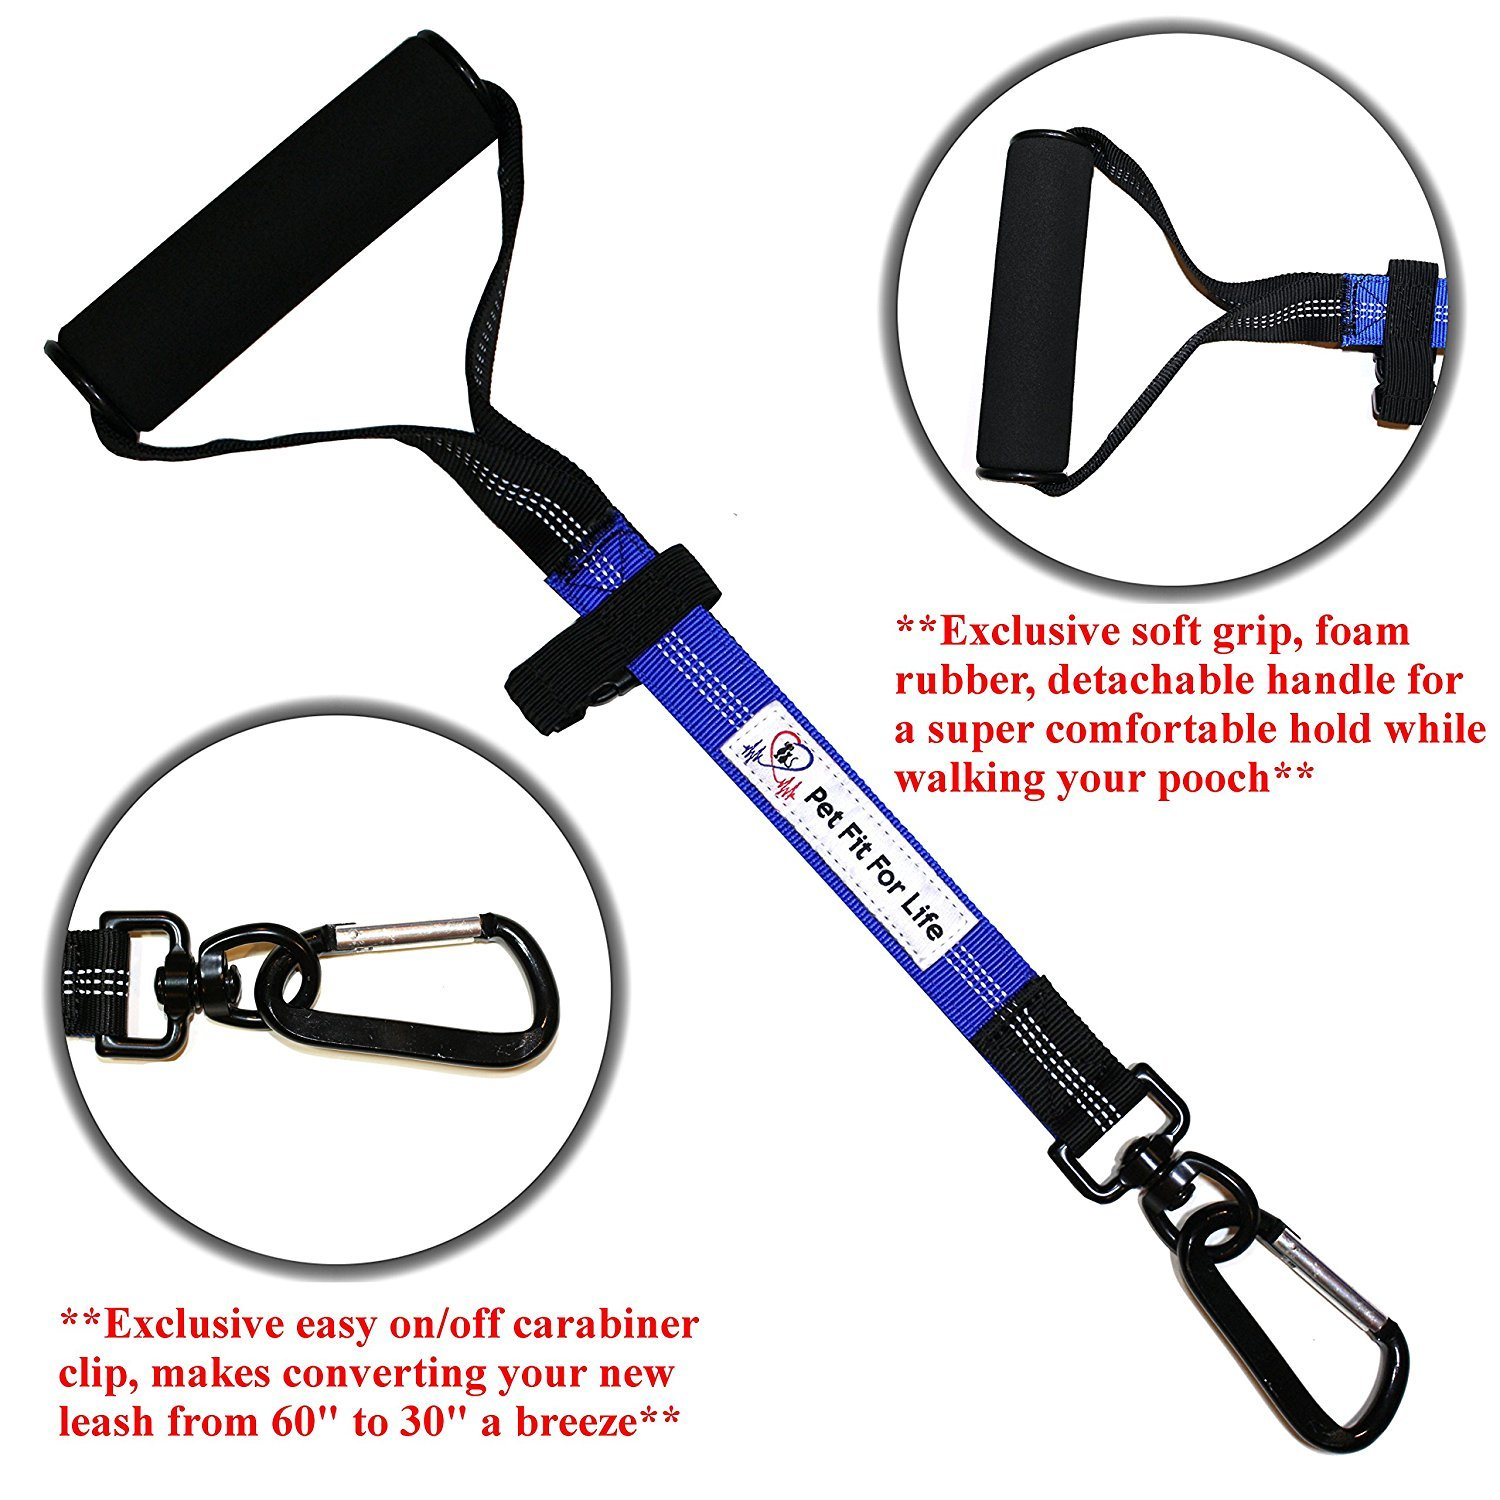 Pet Fit For Life Light Weight 64 Premium Dual Dog Leash with Comfortable Soft Grip Foam Rubber Handle and Integrated Shock Absorbing Bungee Bonus Water Bowl